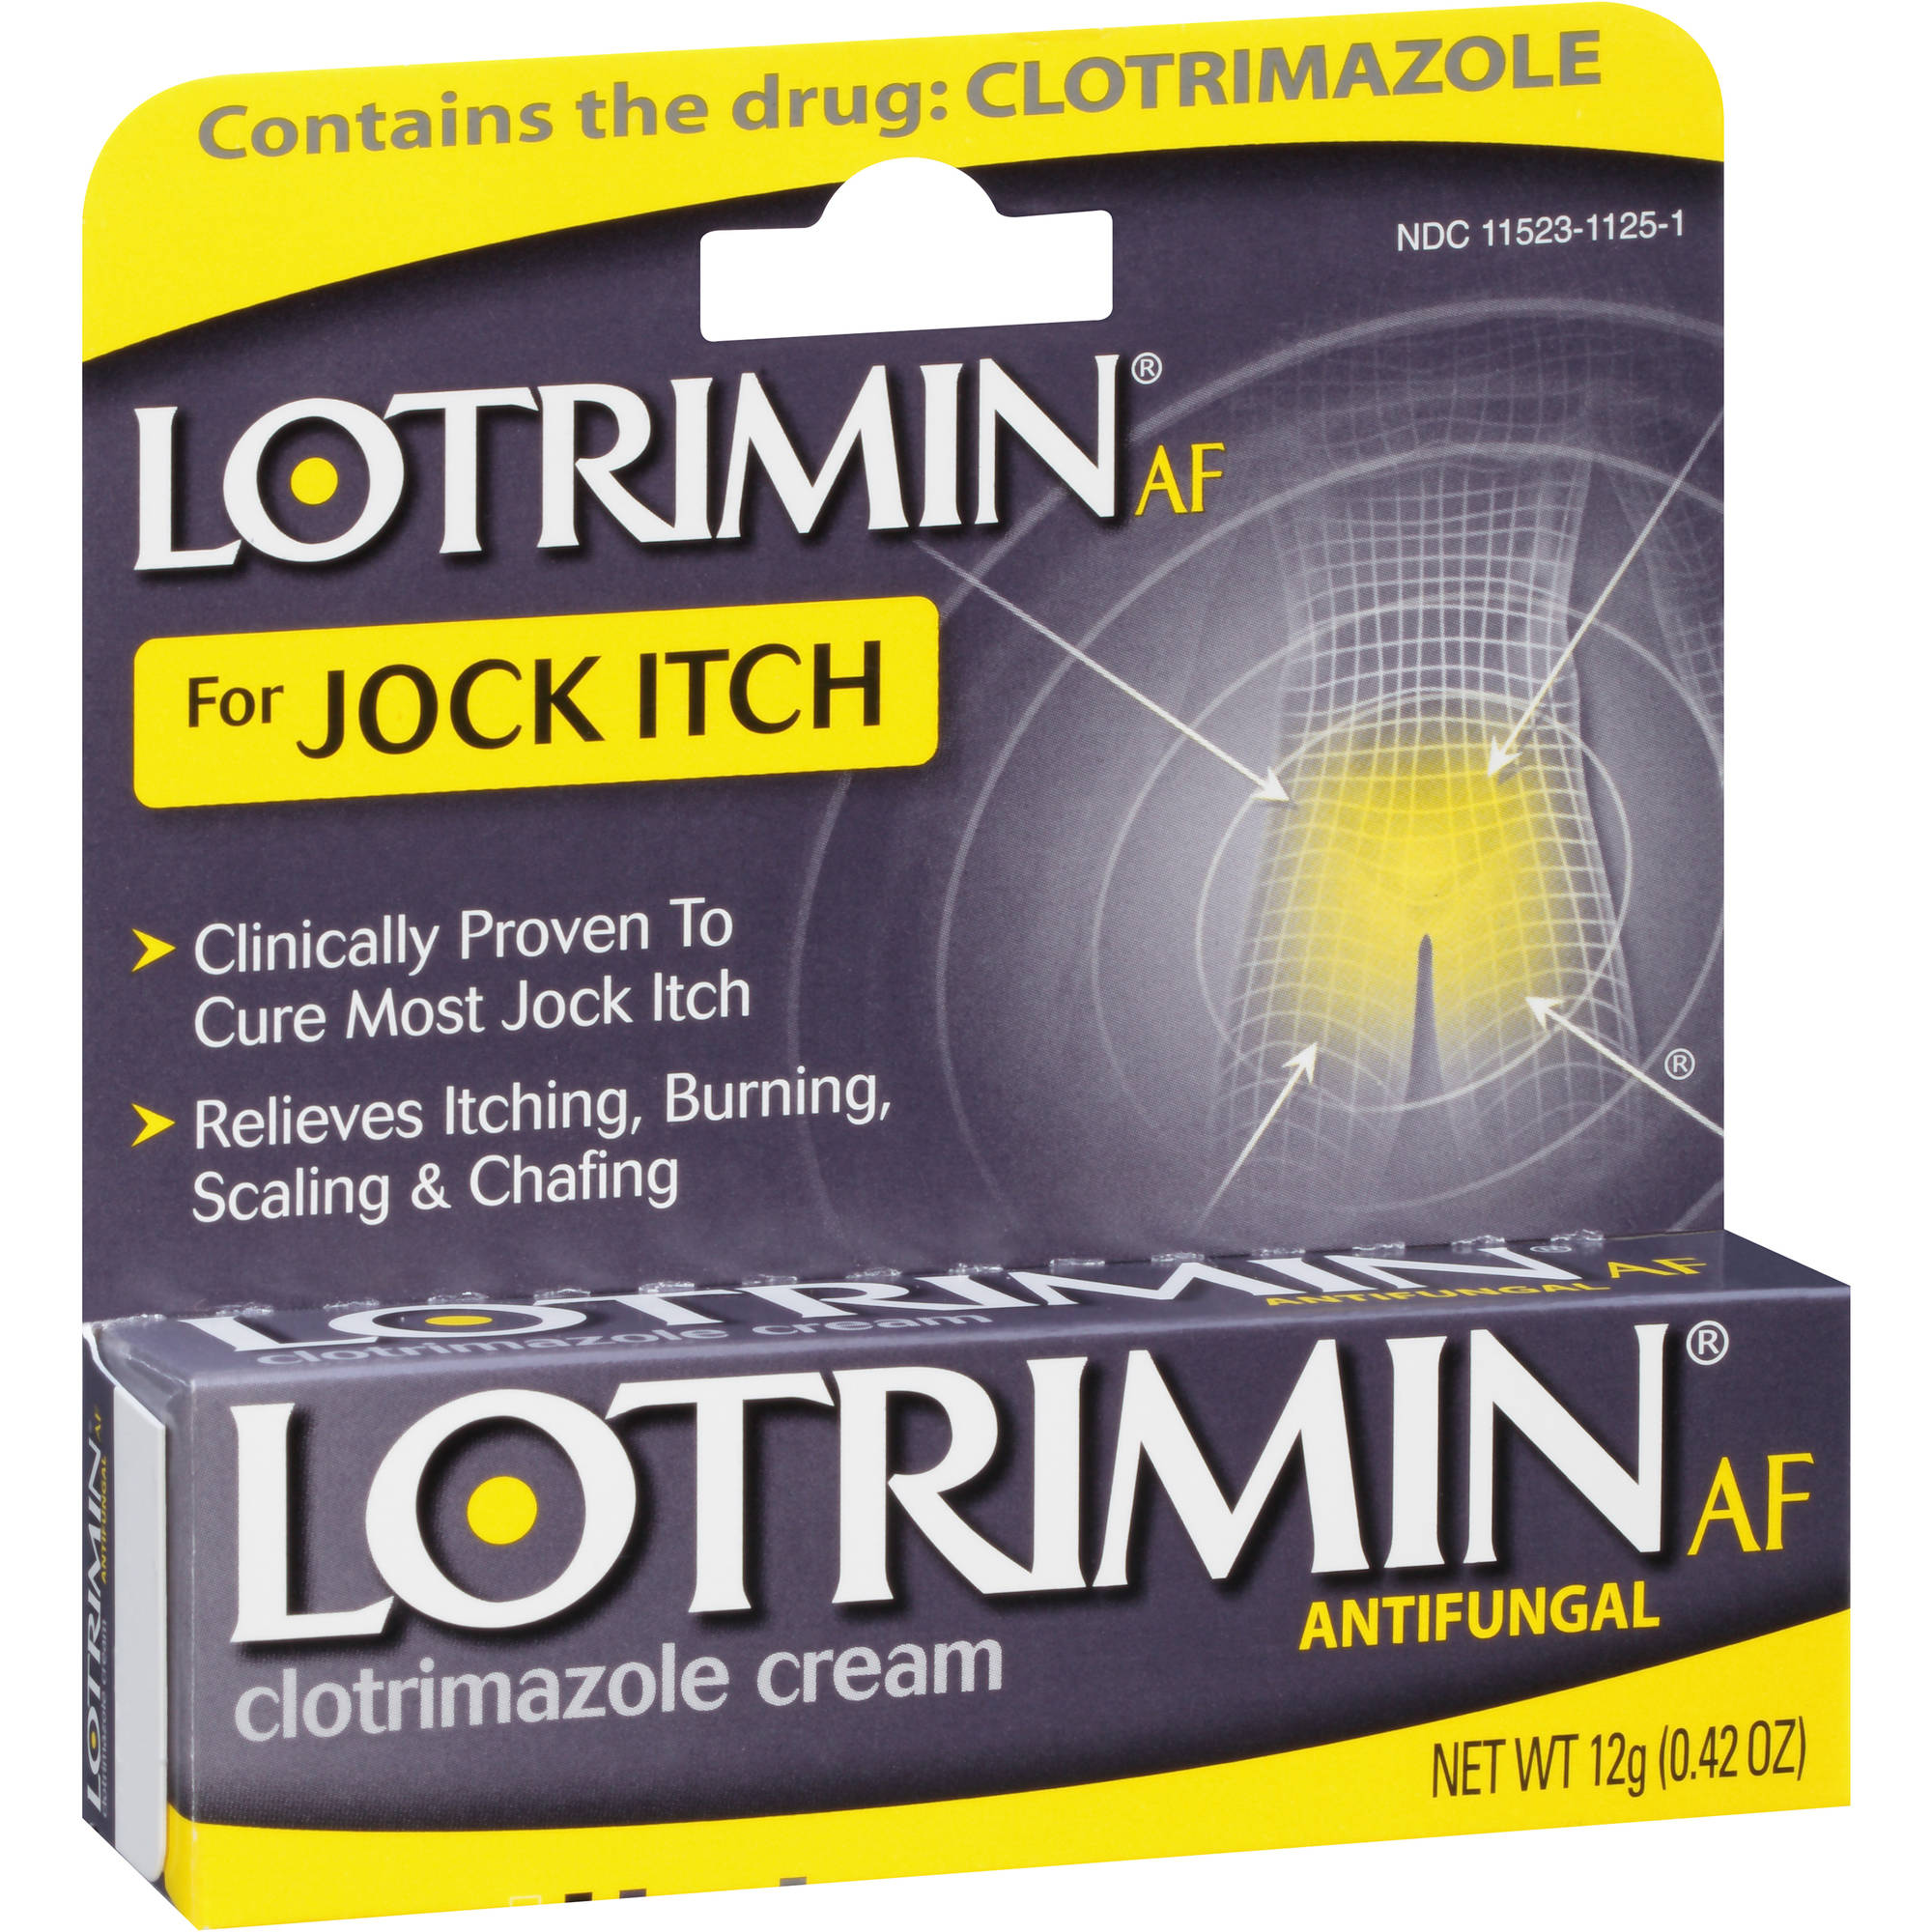 Lotrimin AF for Jock Itch Antifungal Clotrimazole Cream, 0.42 oz